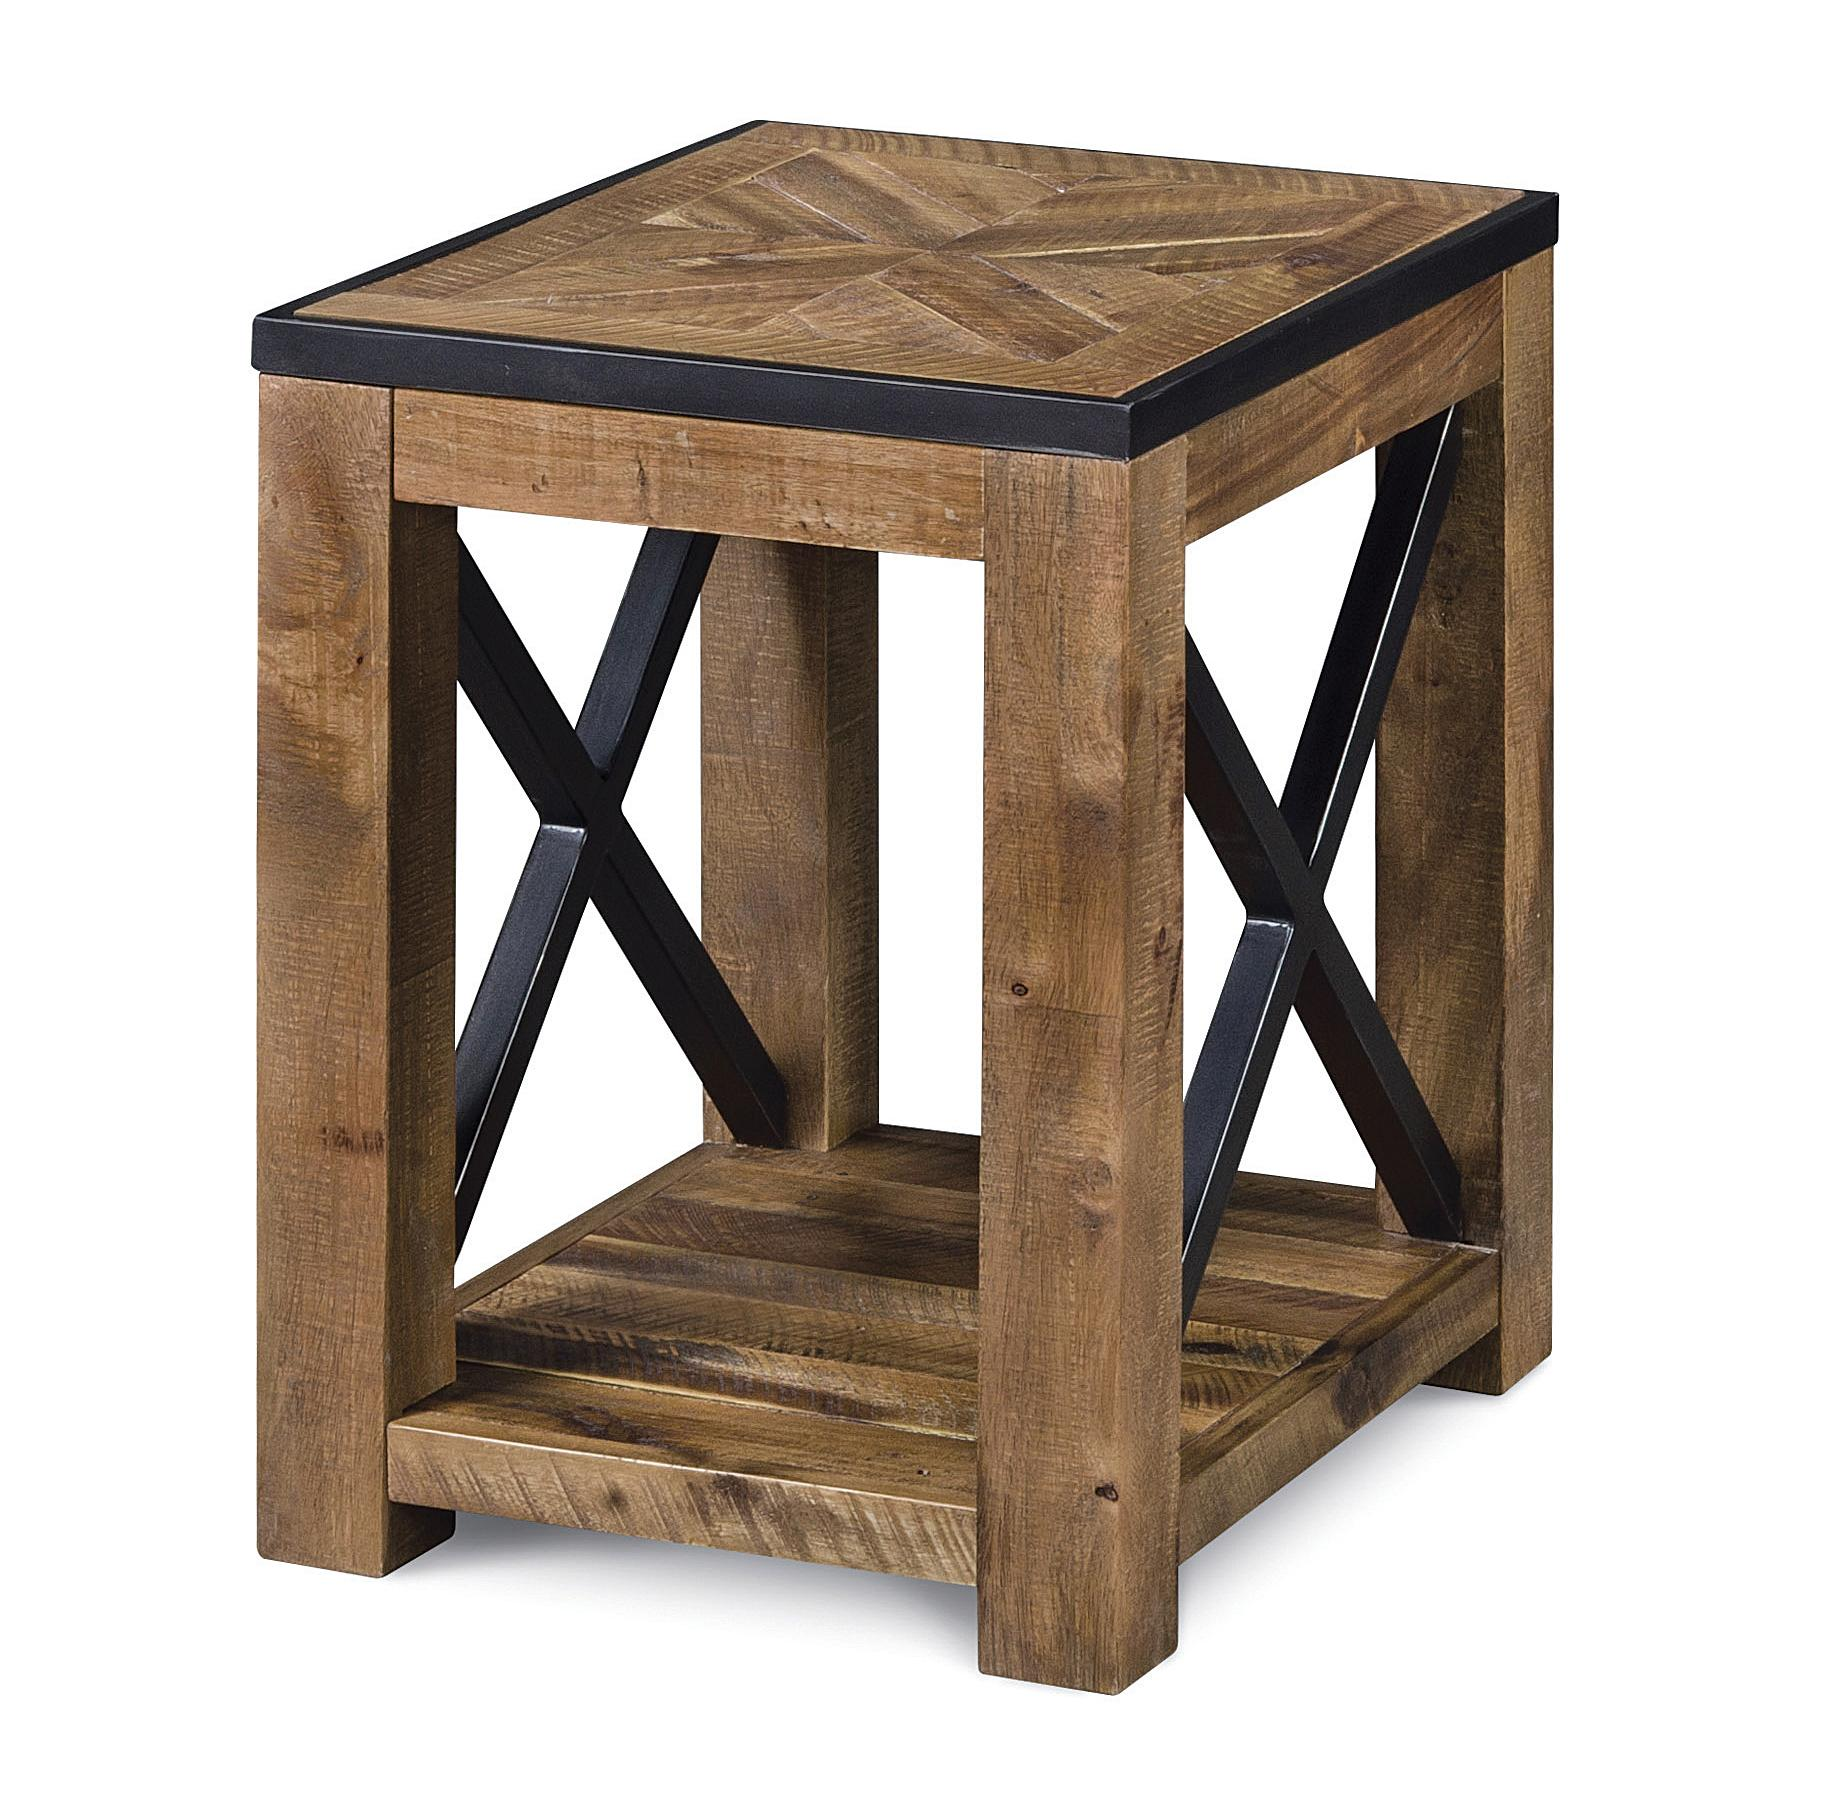 Penderton Chairside End Table by Magnussen Home at Mueller Furniture